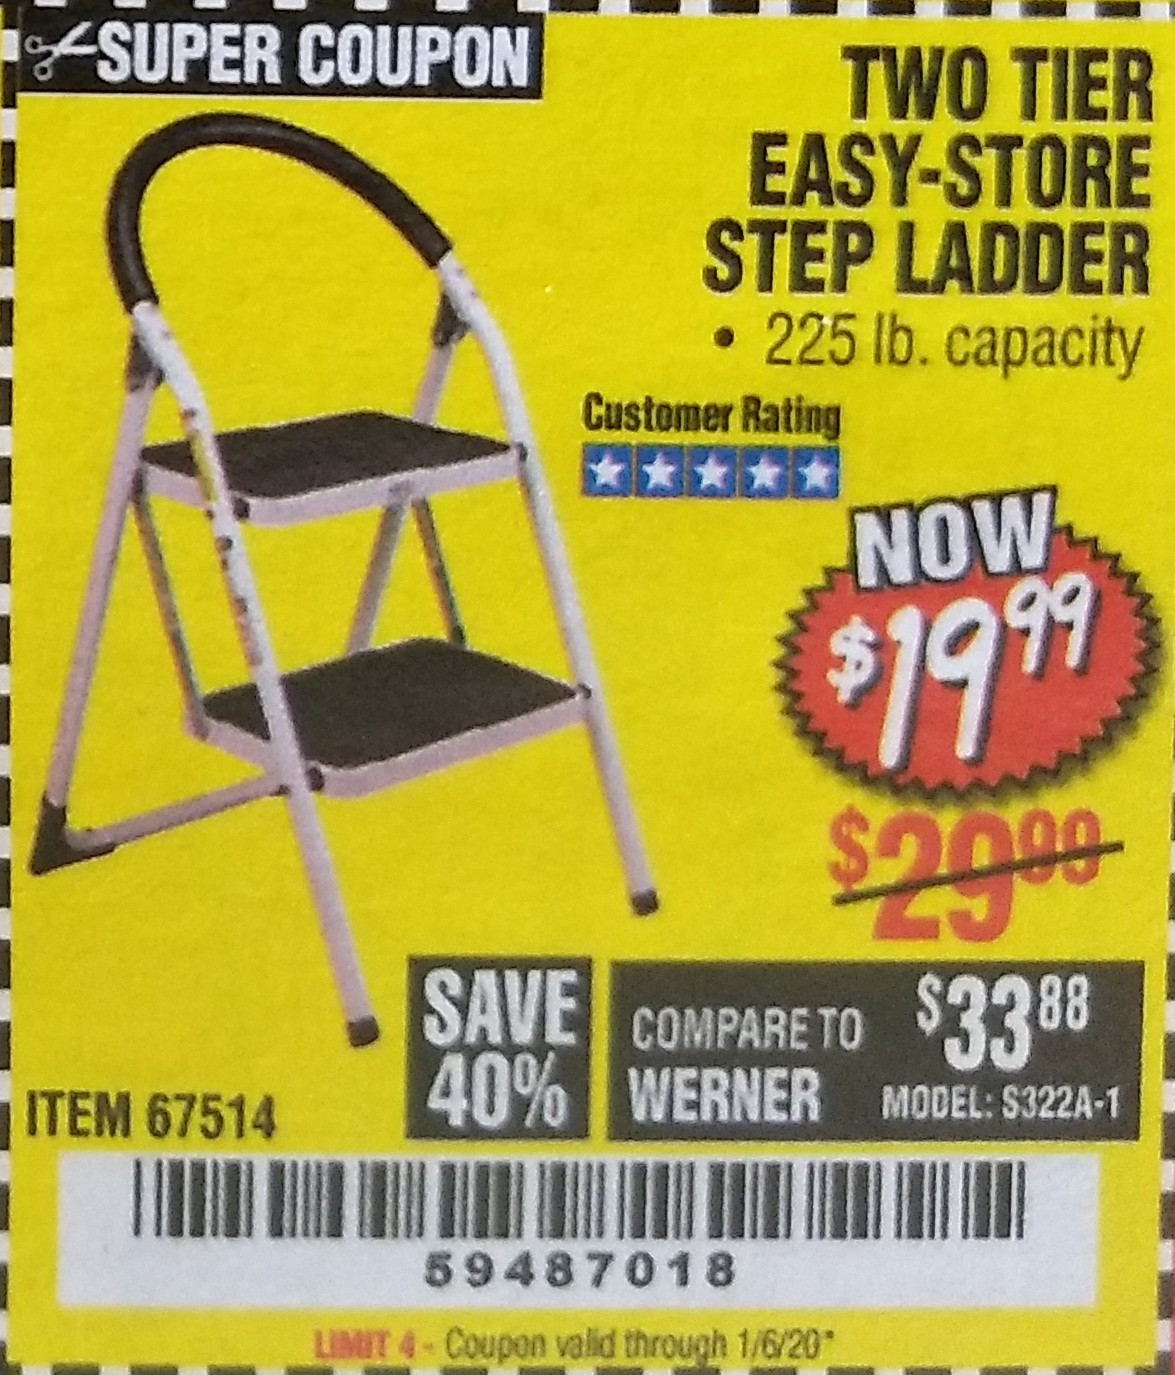 www.hfqpdb.com - TWO TIER EASY-STORE STEP LADDER Lot No. 67514